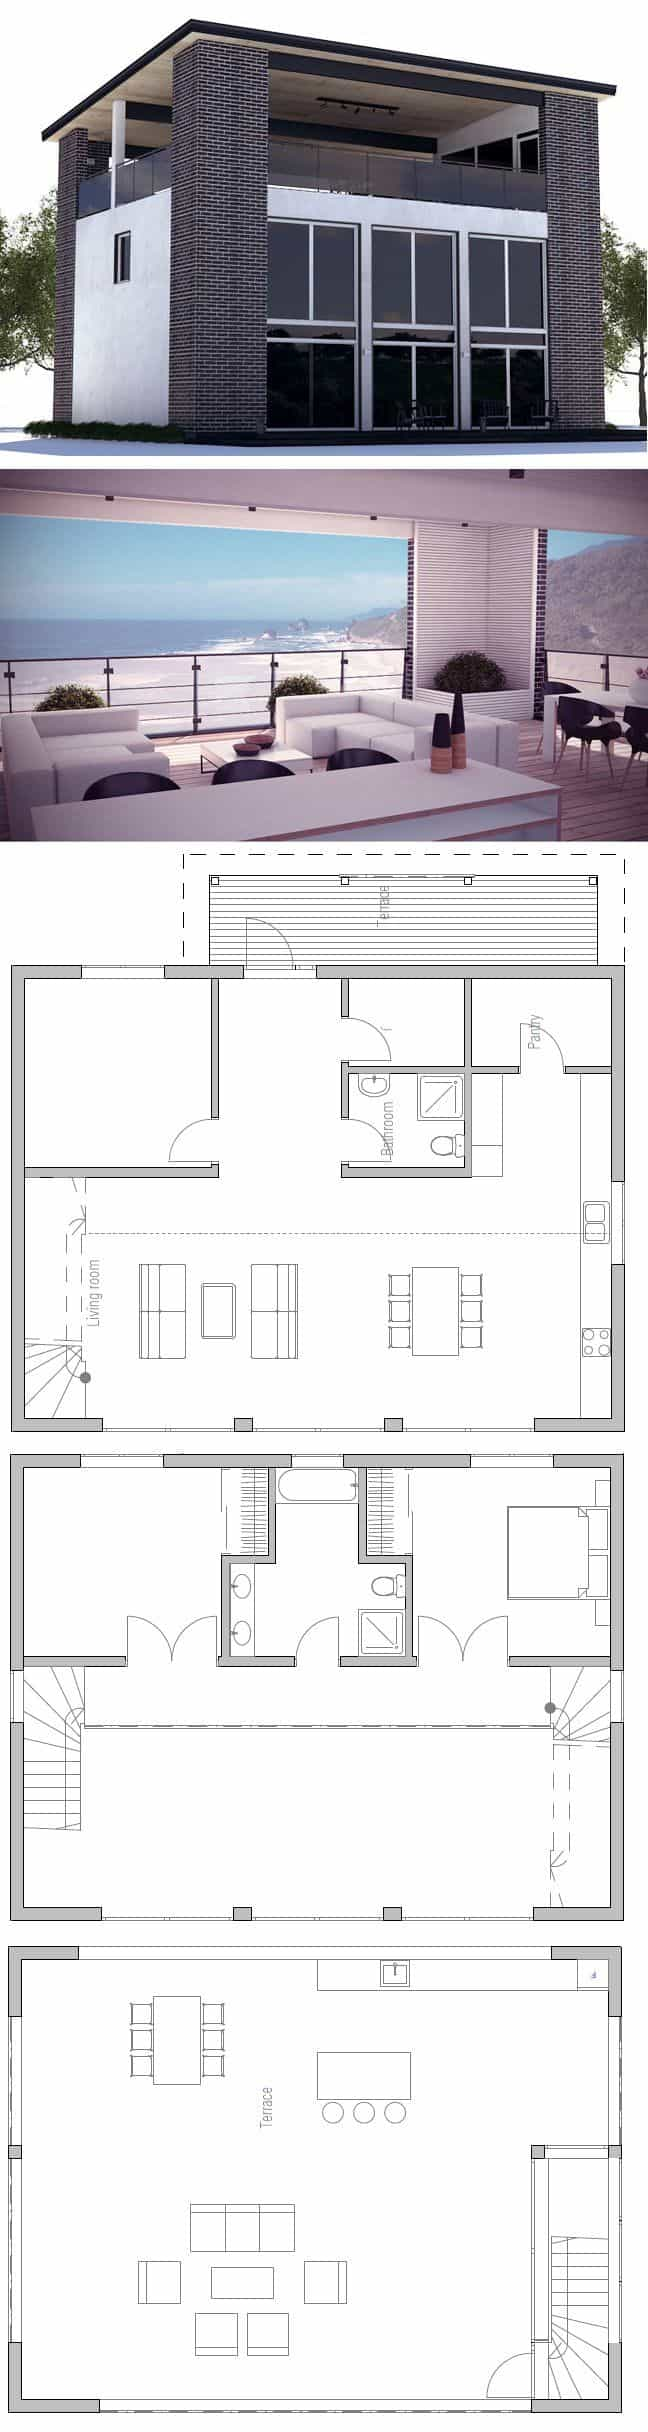 7 modern house plans samples modern home for Best small house plans ever